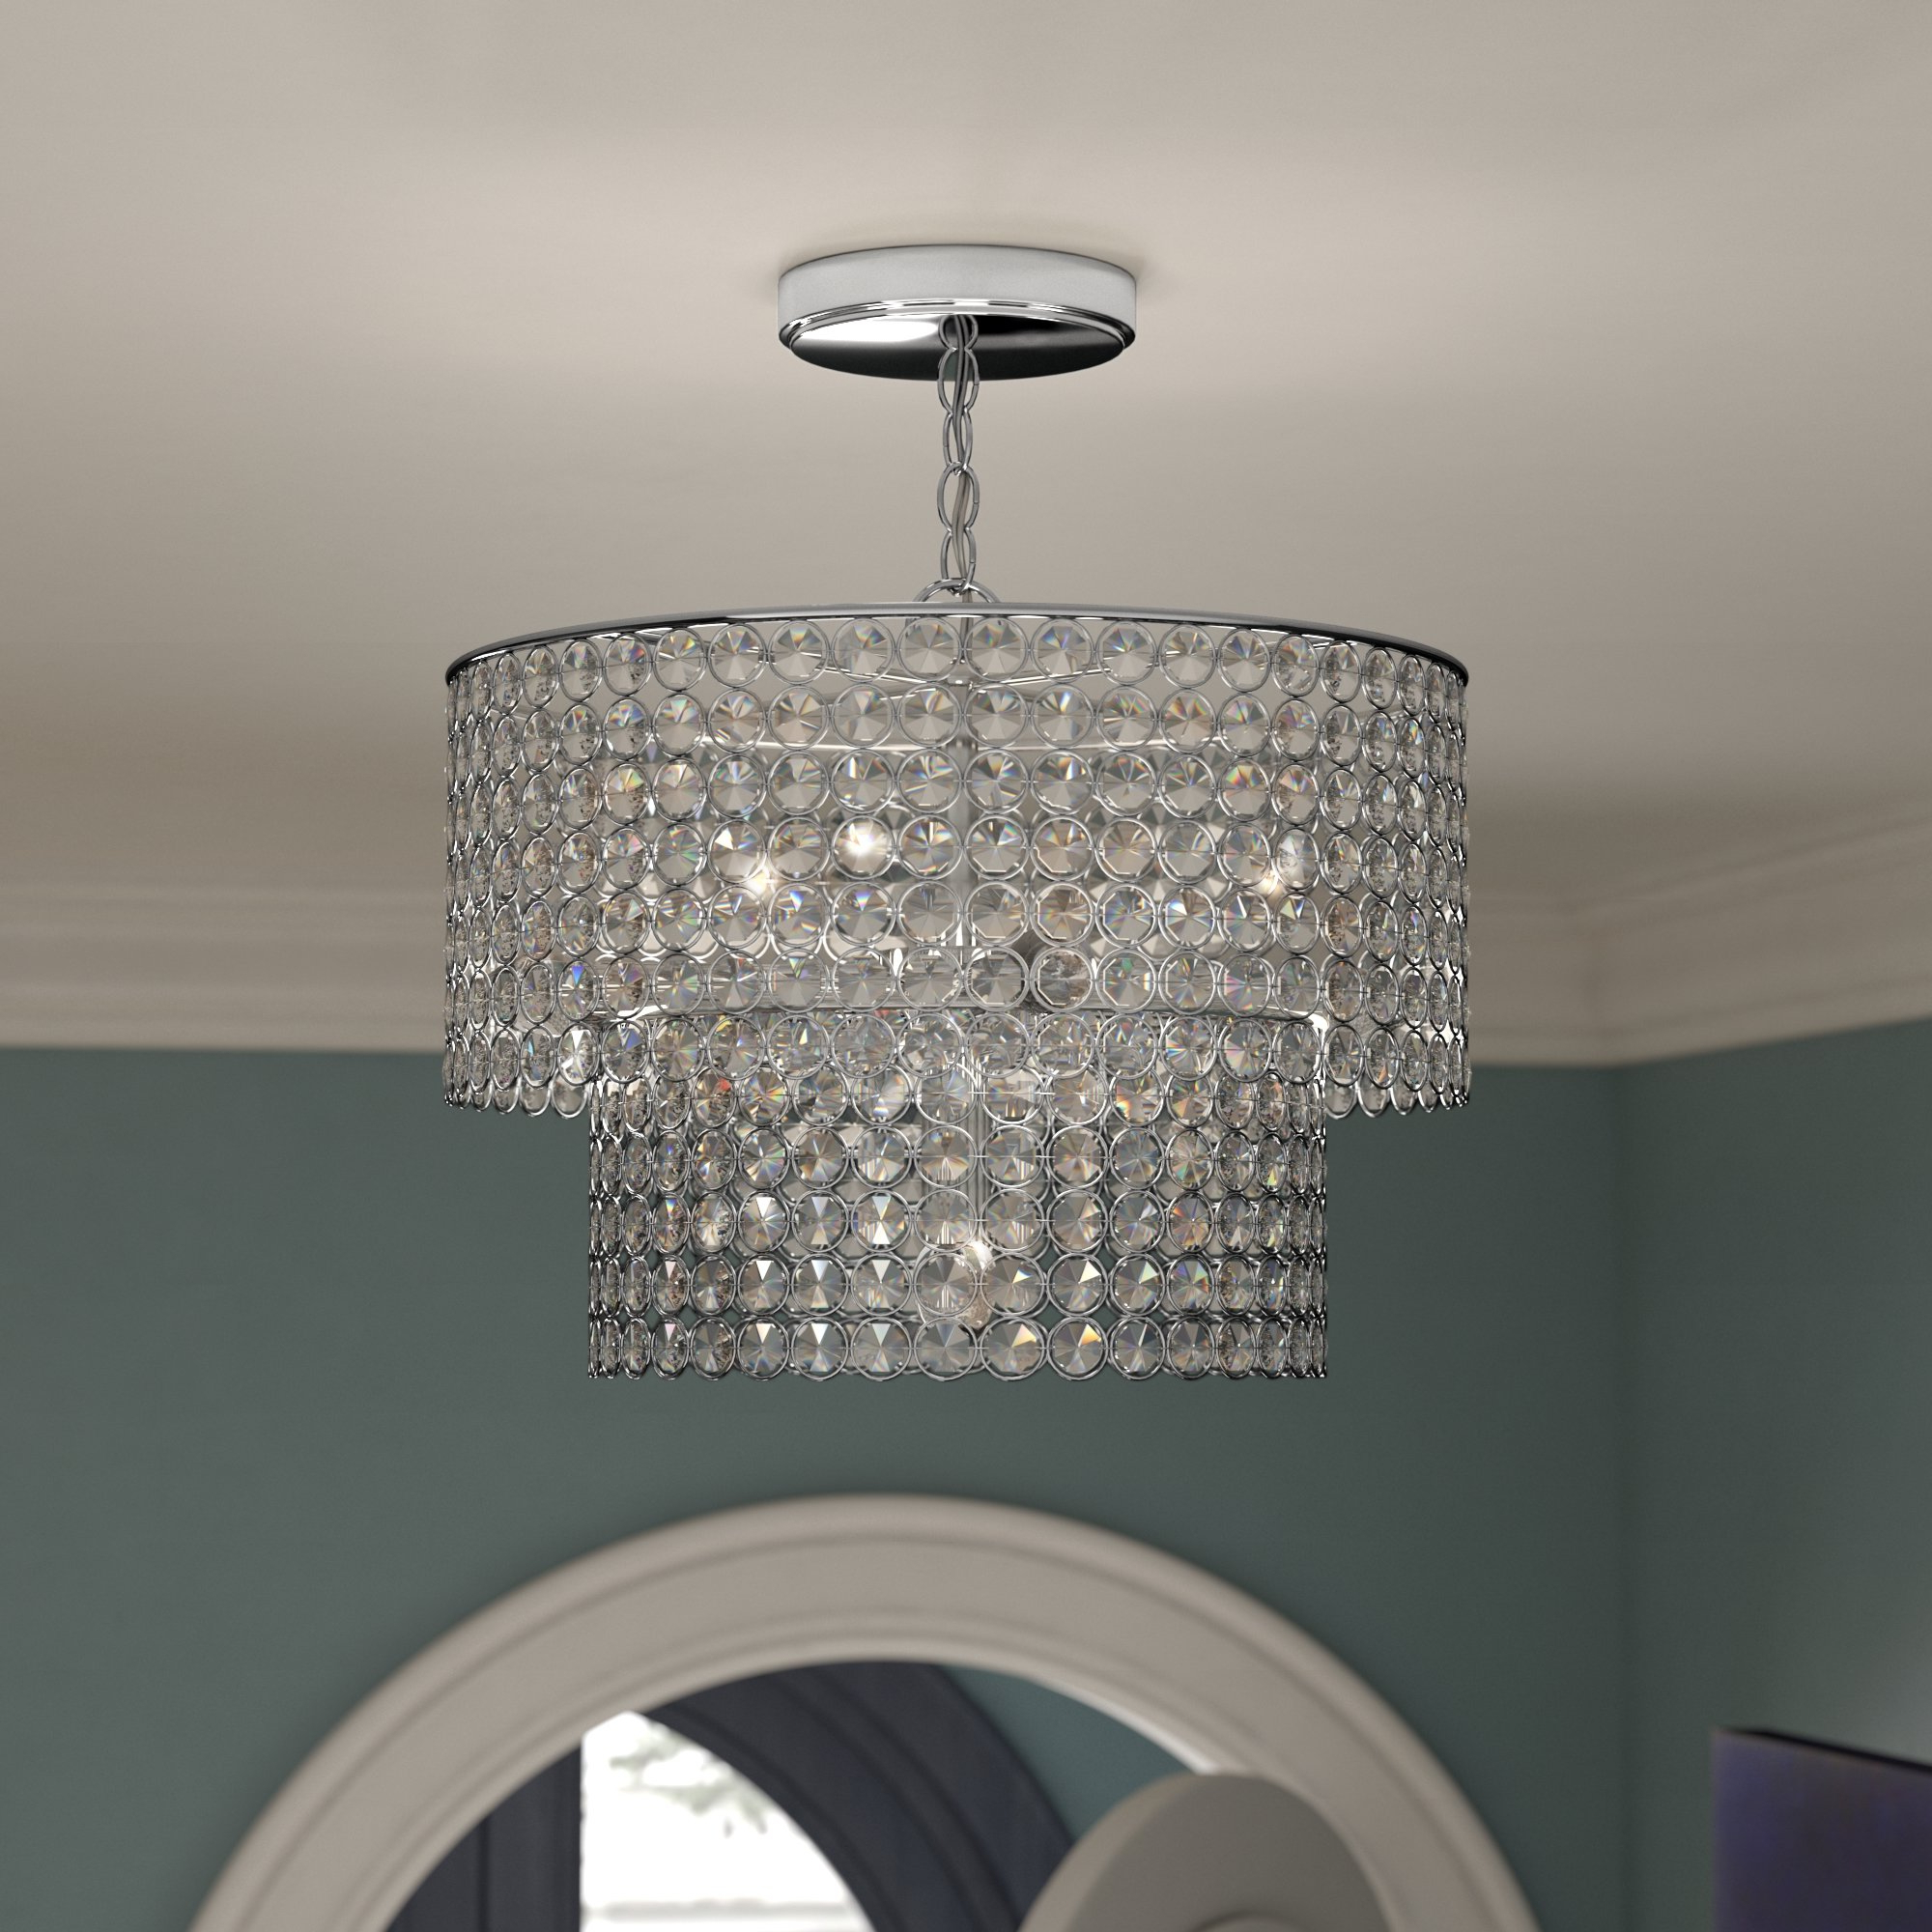 Von 4 Light Crystal Chandeliers With Best And Newest Saltford 5 Light Crystal Chandelier (View 15 of 20)